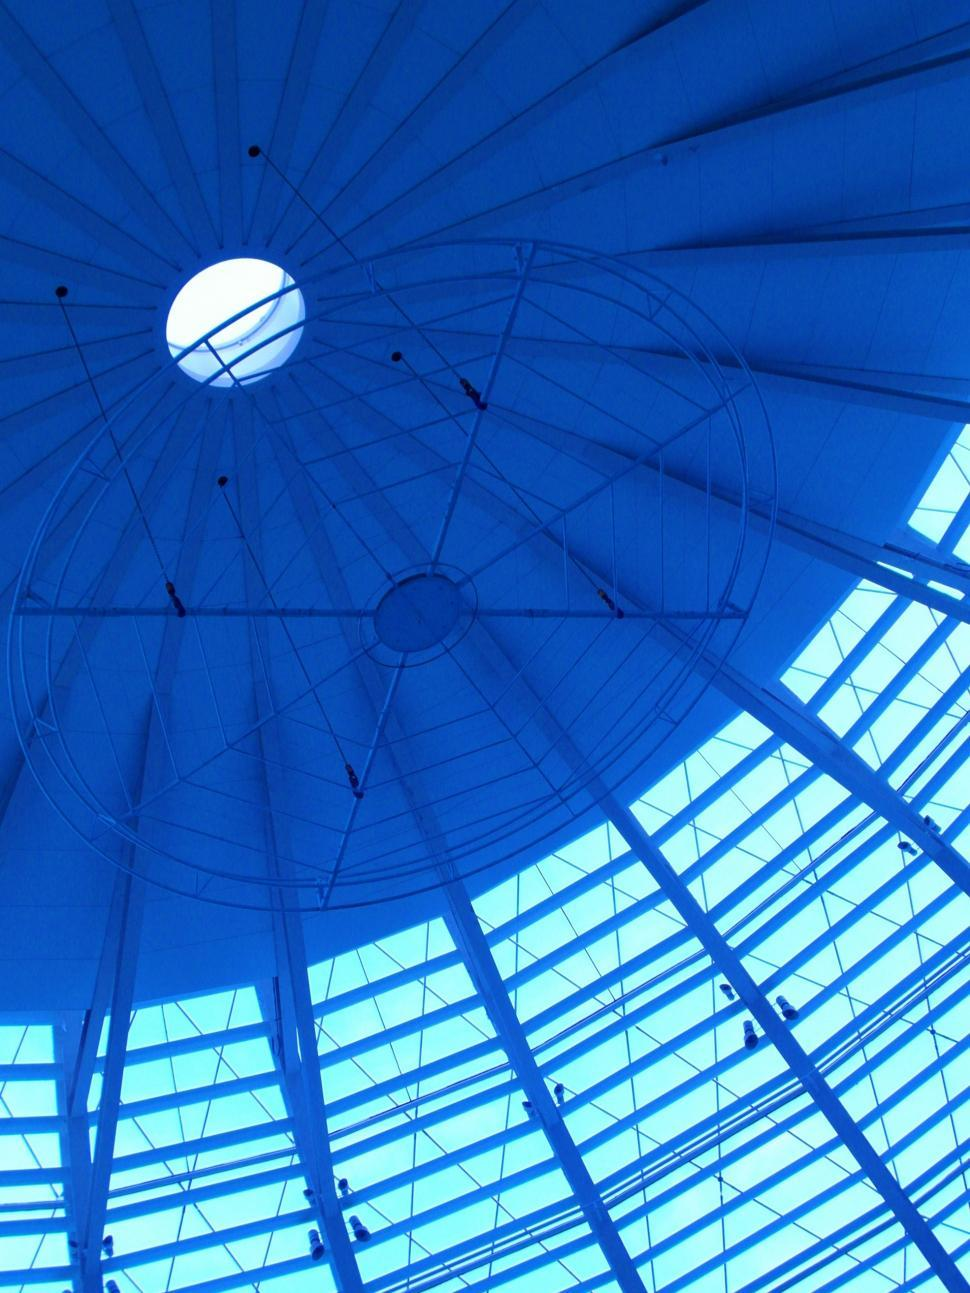 Download Free Stock Photo of Glass Dome Interior